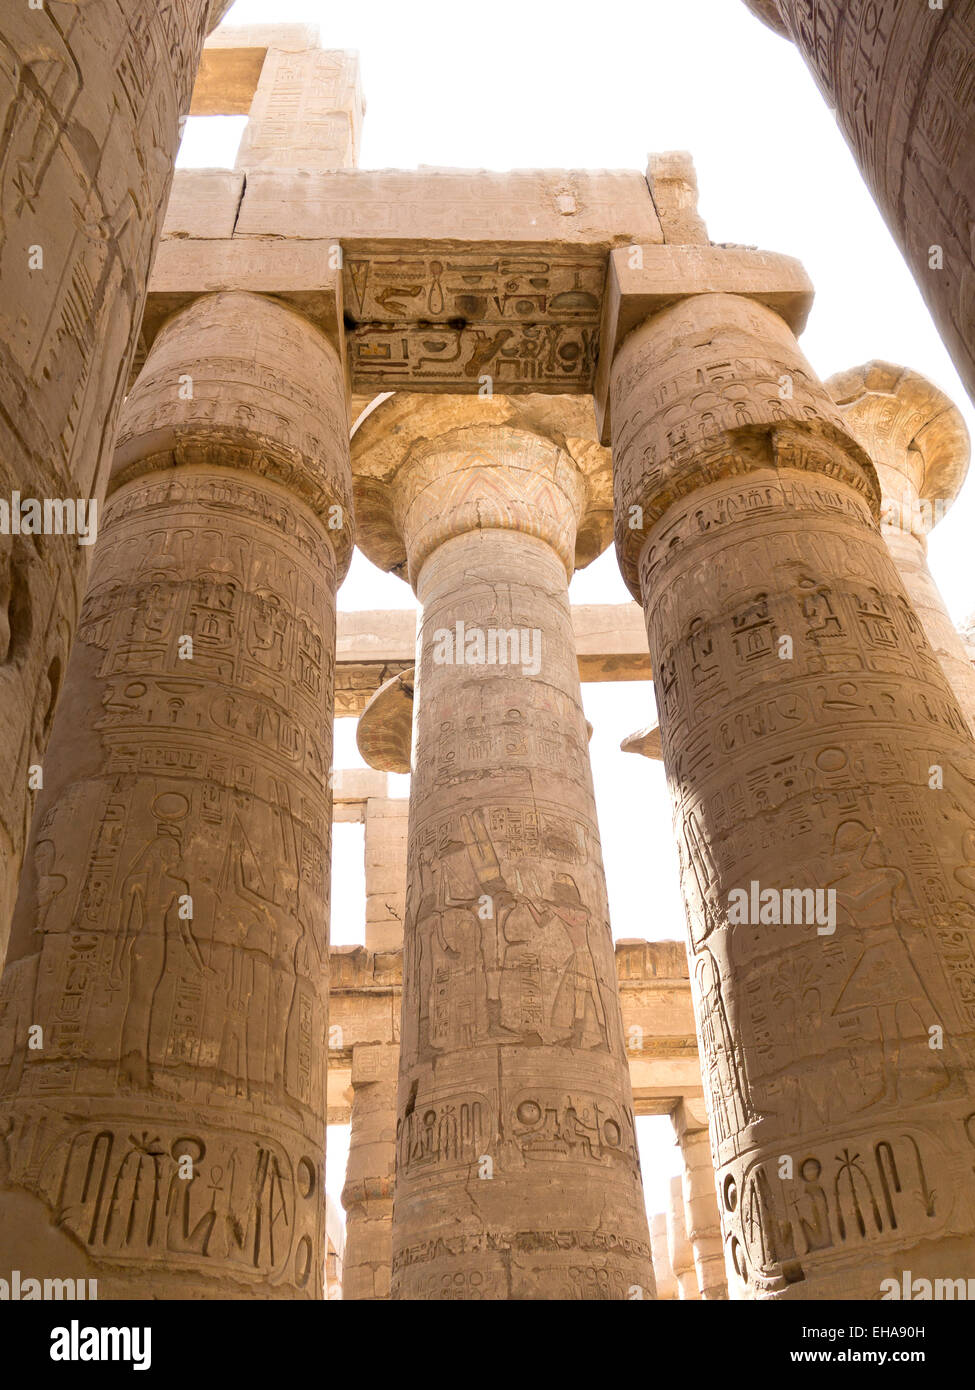 The Hypostyle Hall  within the Temple of Amun at Karnak, Luxor Egypt - Stock Image